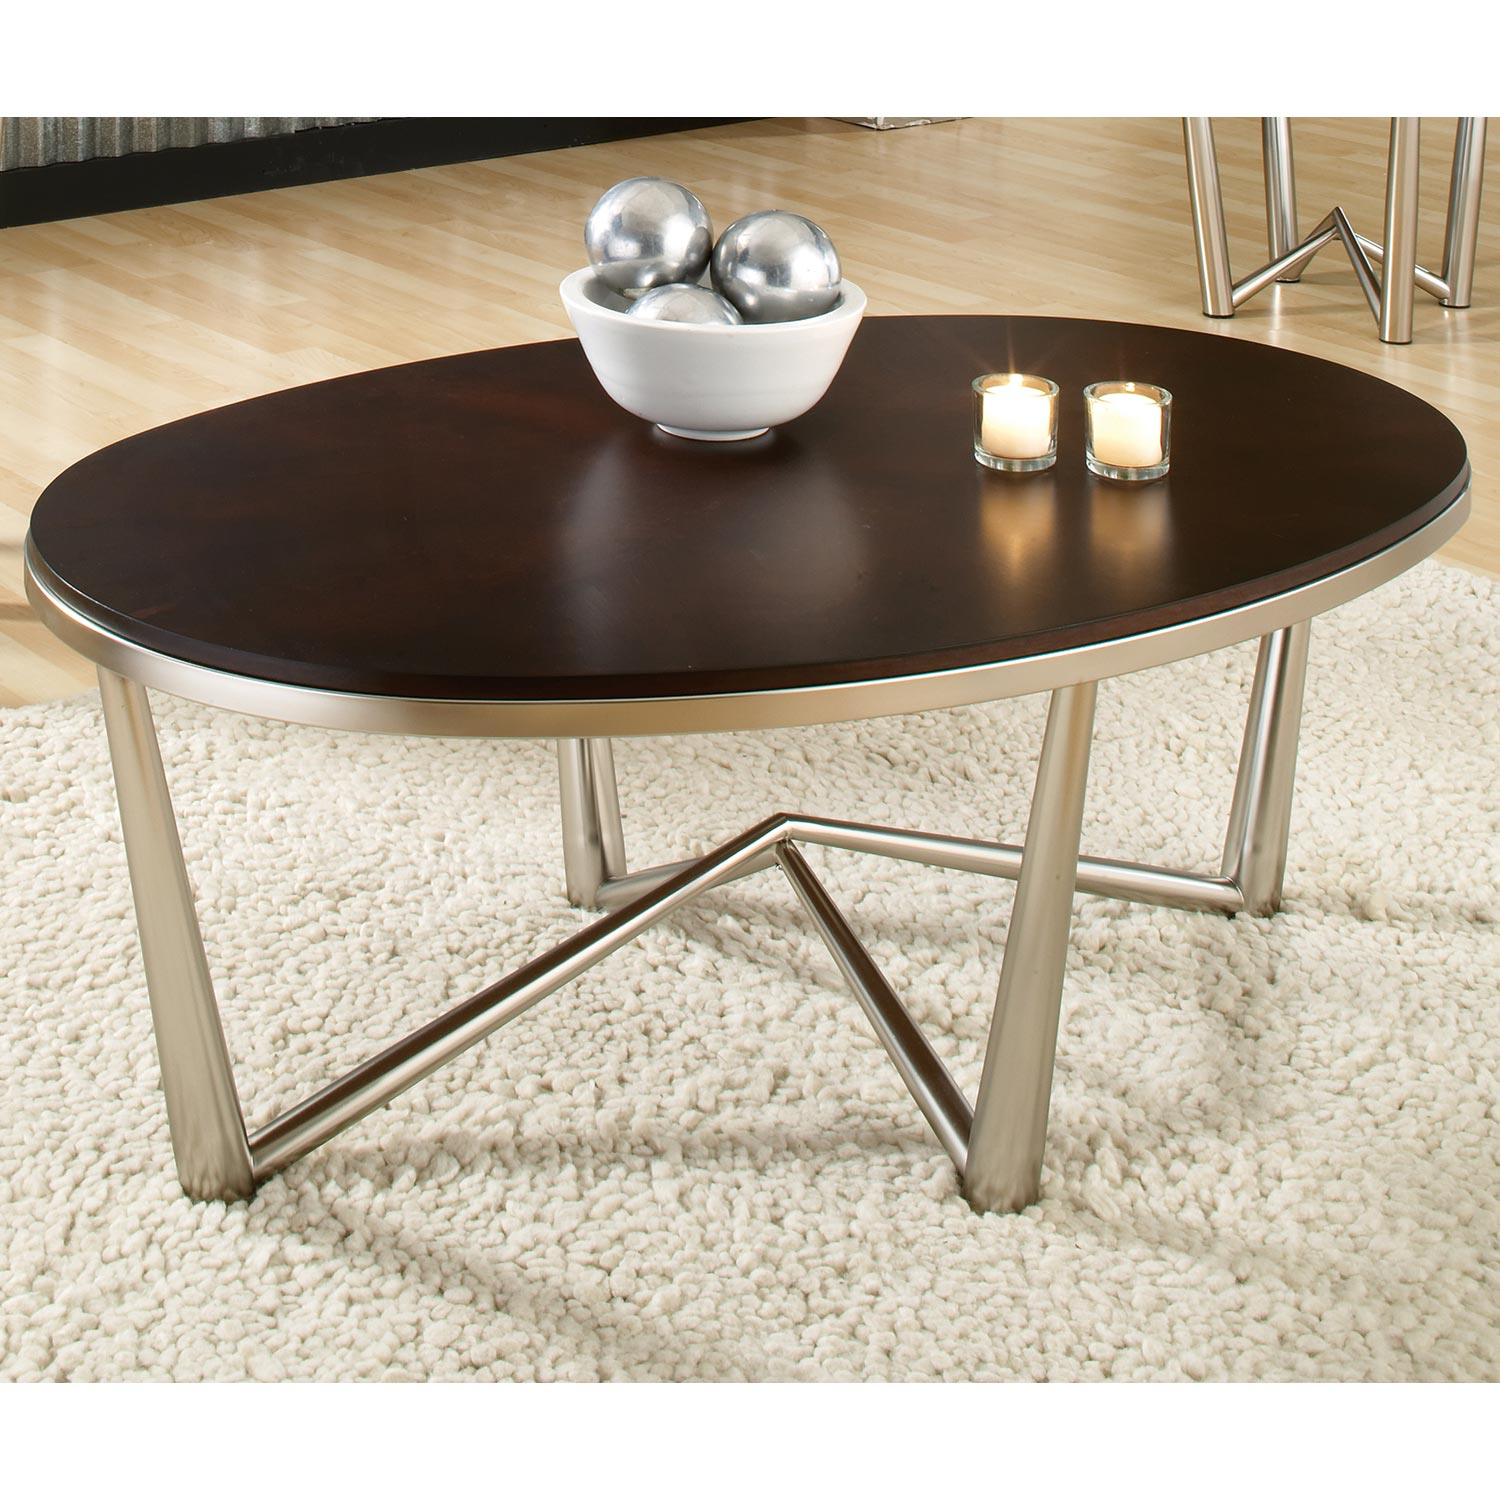 Cosmo Oval Coffee Table & Round End Tables Set - Wood, Metal - SSC-CM3000